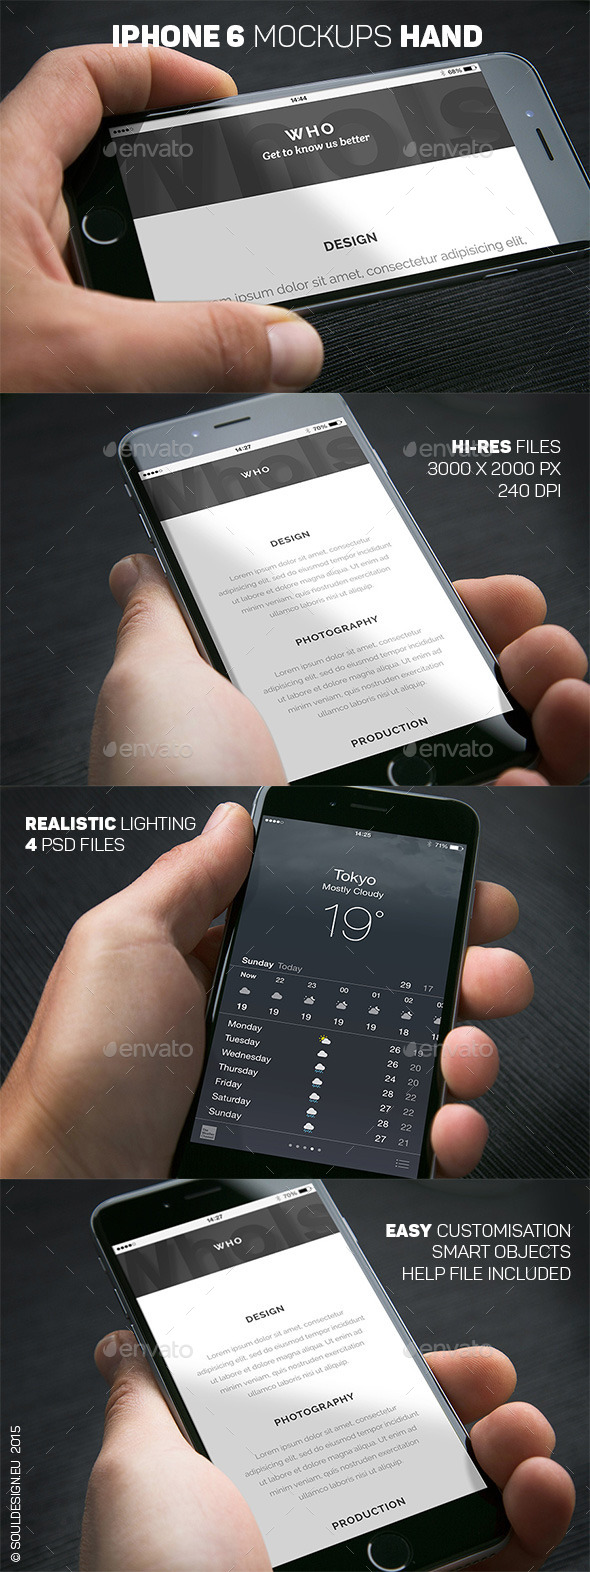 iPhone 6 Closeup Mockups Hand - Mobile Displays